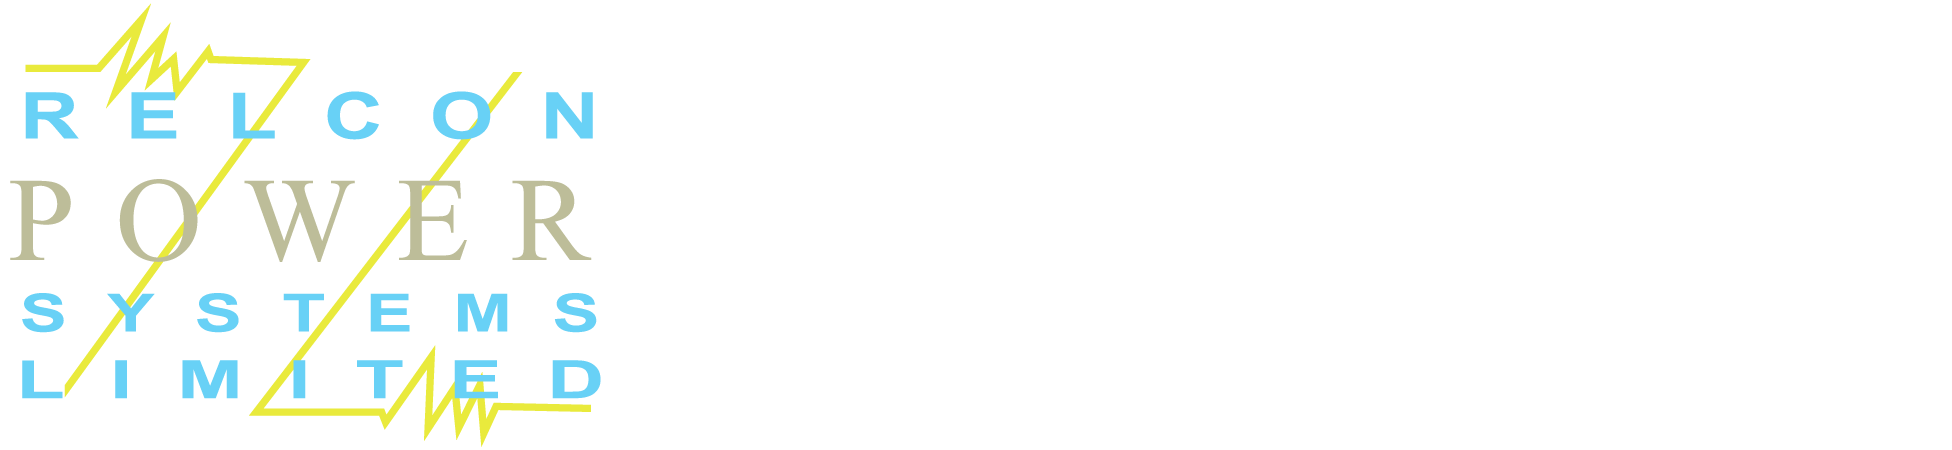 Relcon Power Systems